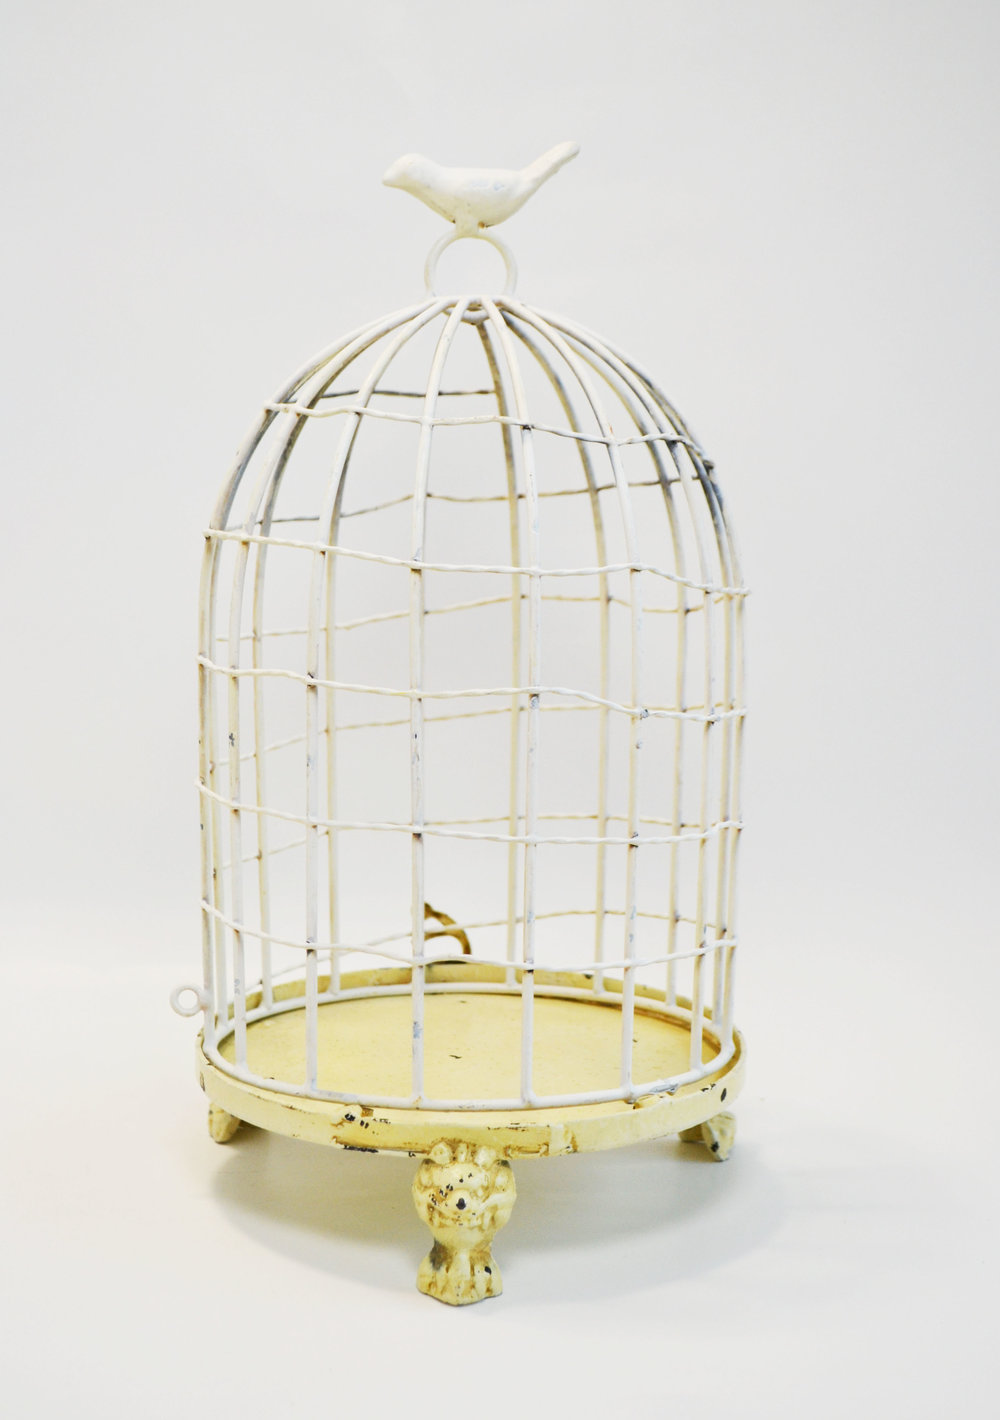 large bird cage prop   Quantity: 9  Price: $15.00